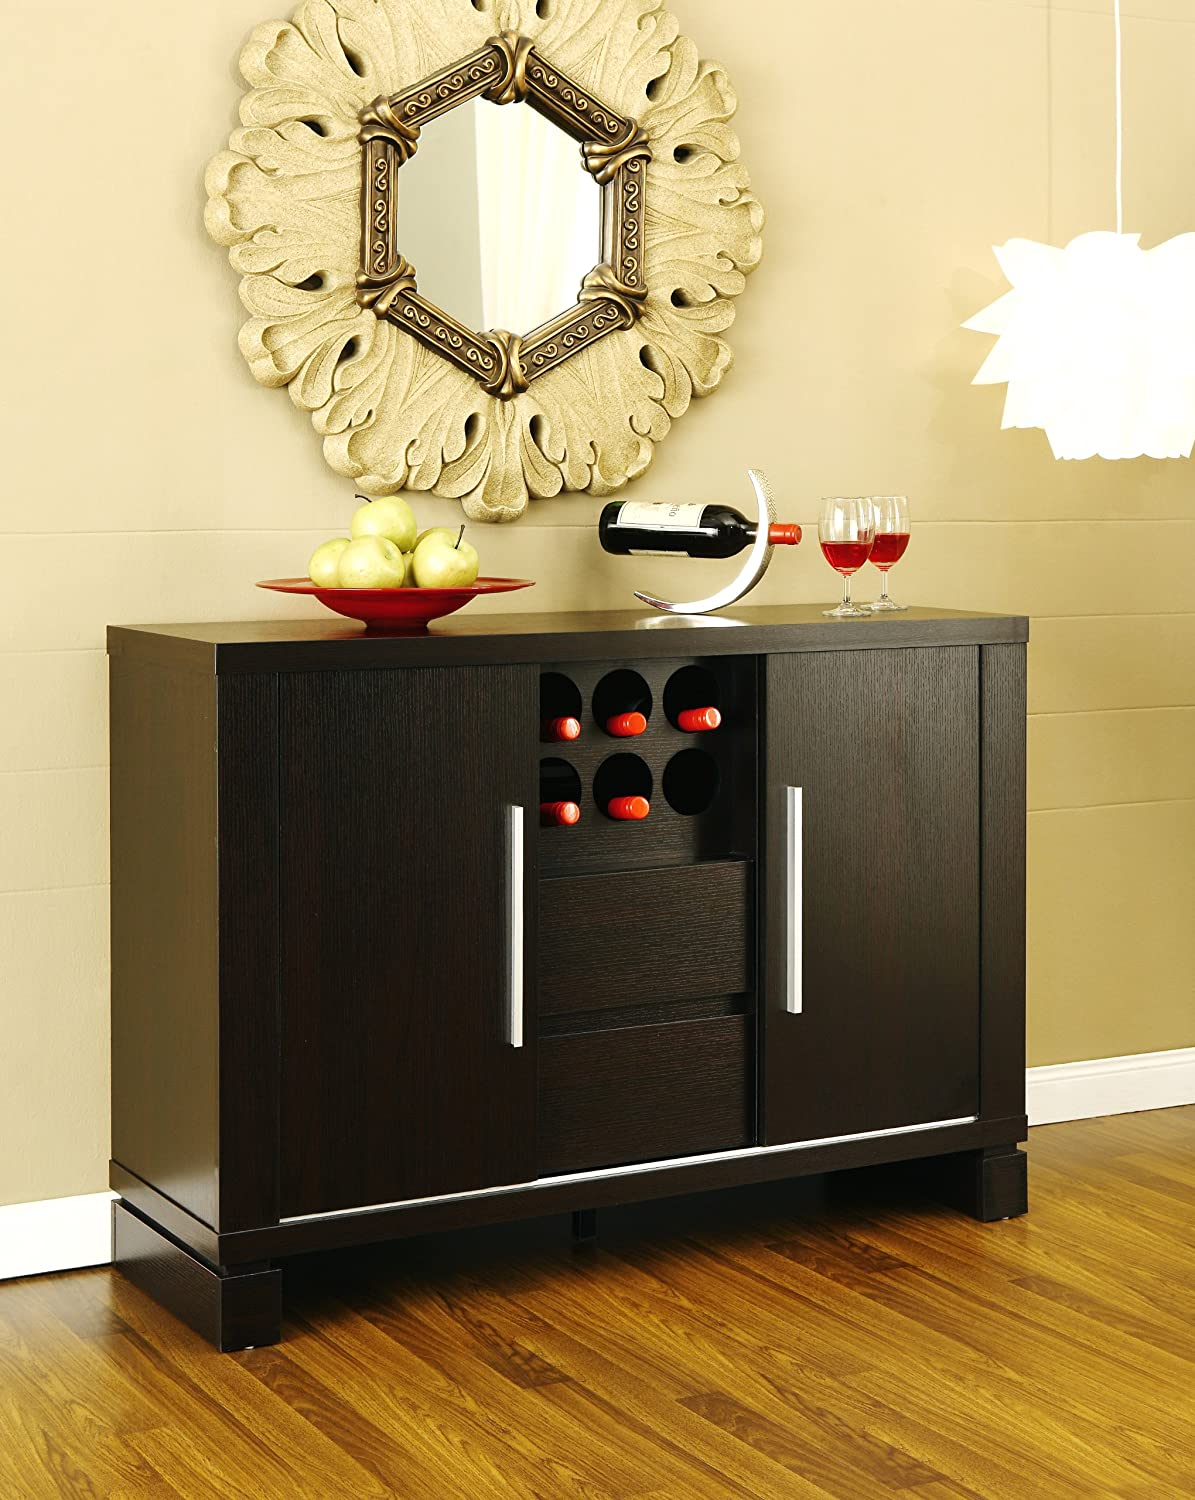 Dining furniture buffet credenza homes decoration tips - Buffet table images ...